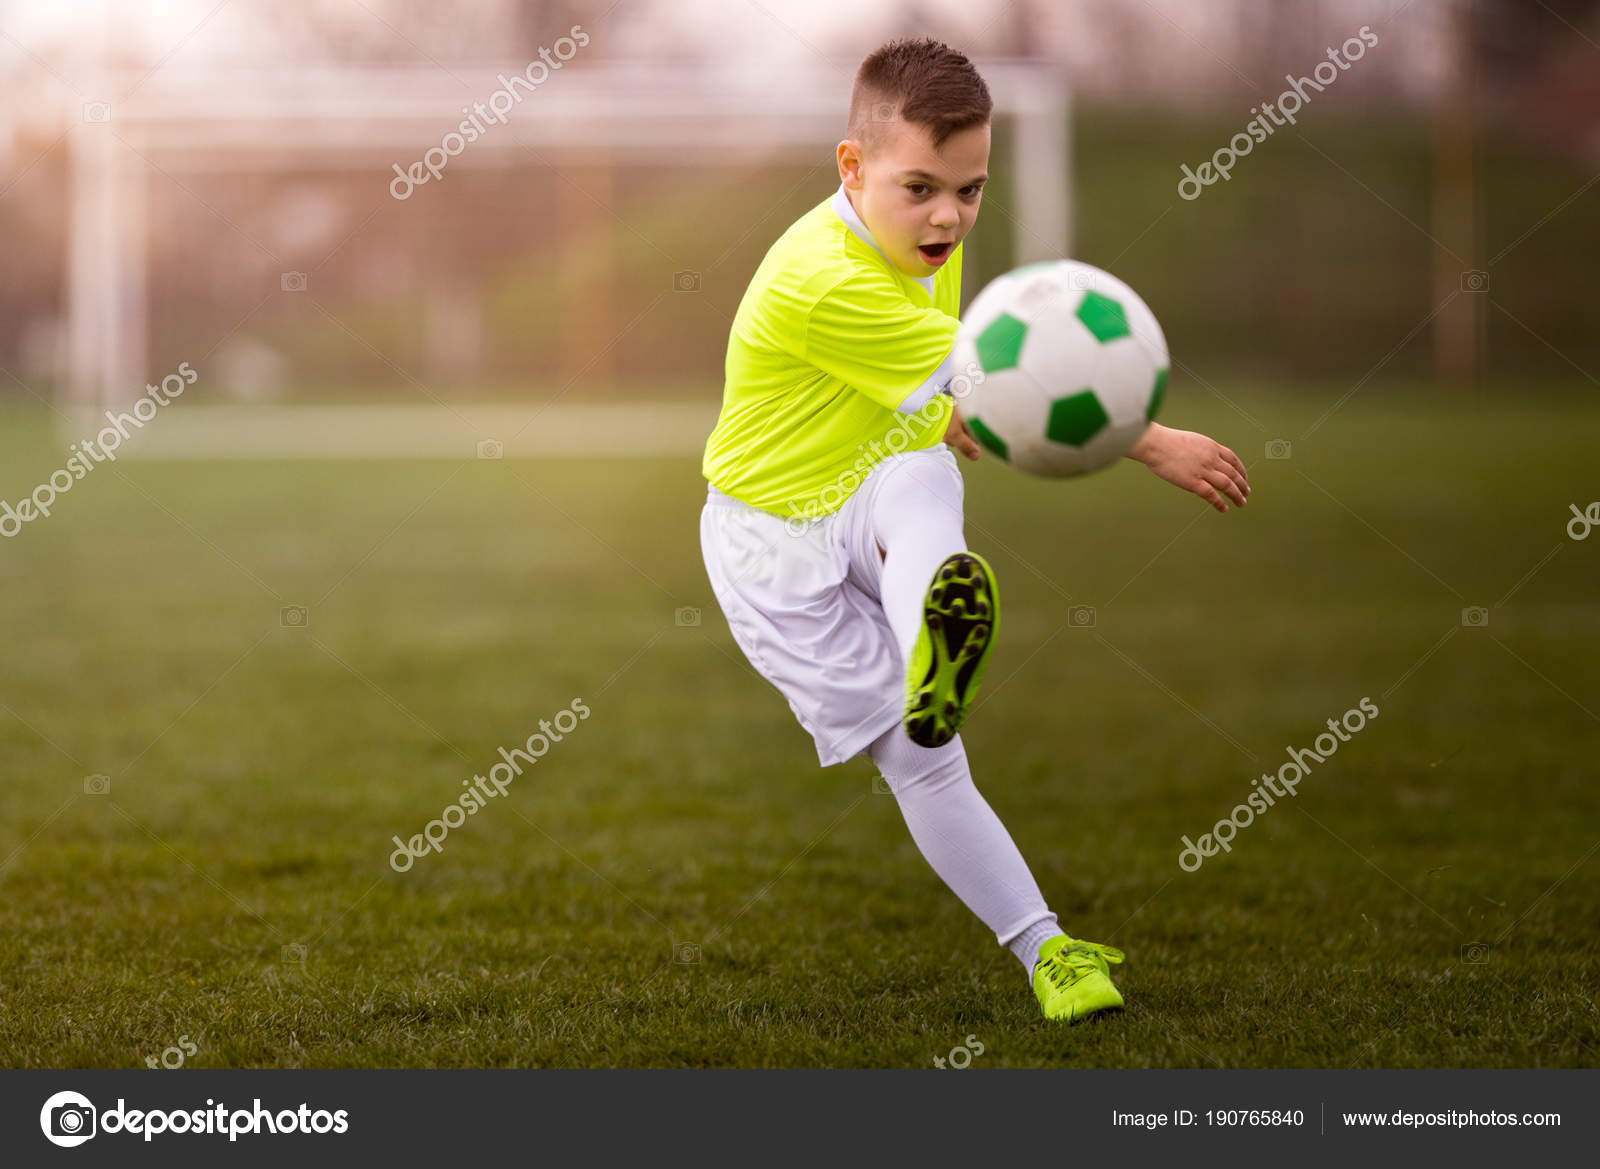 boy kicking football on the sports field stock photo fotokostic